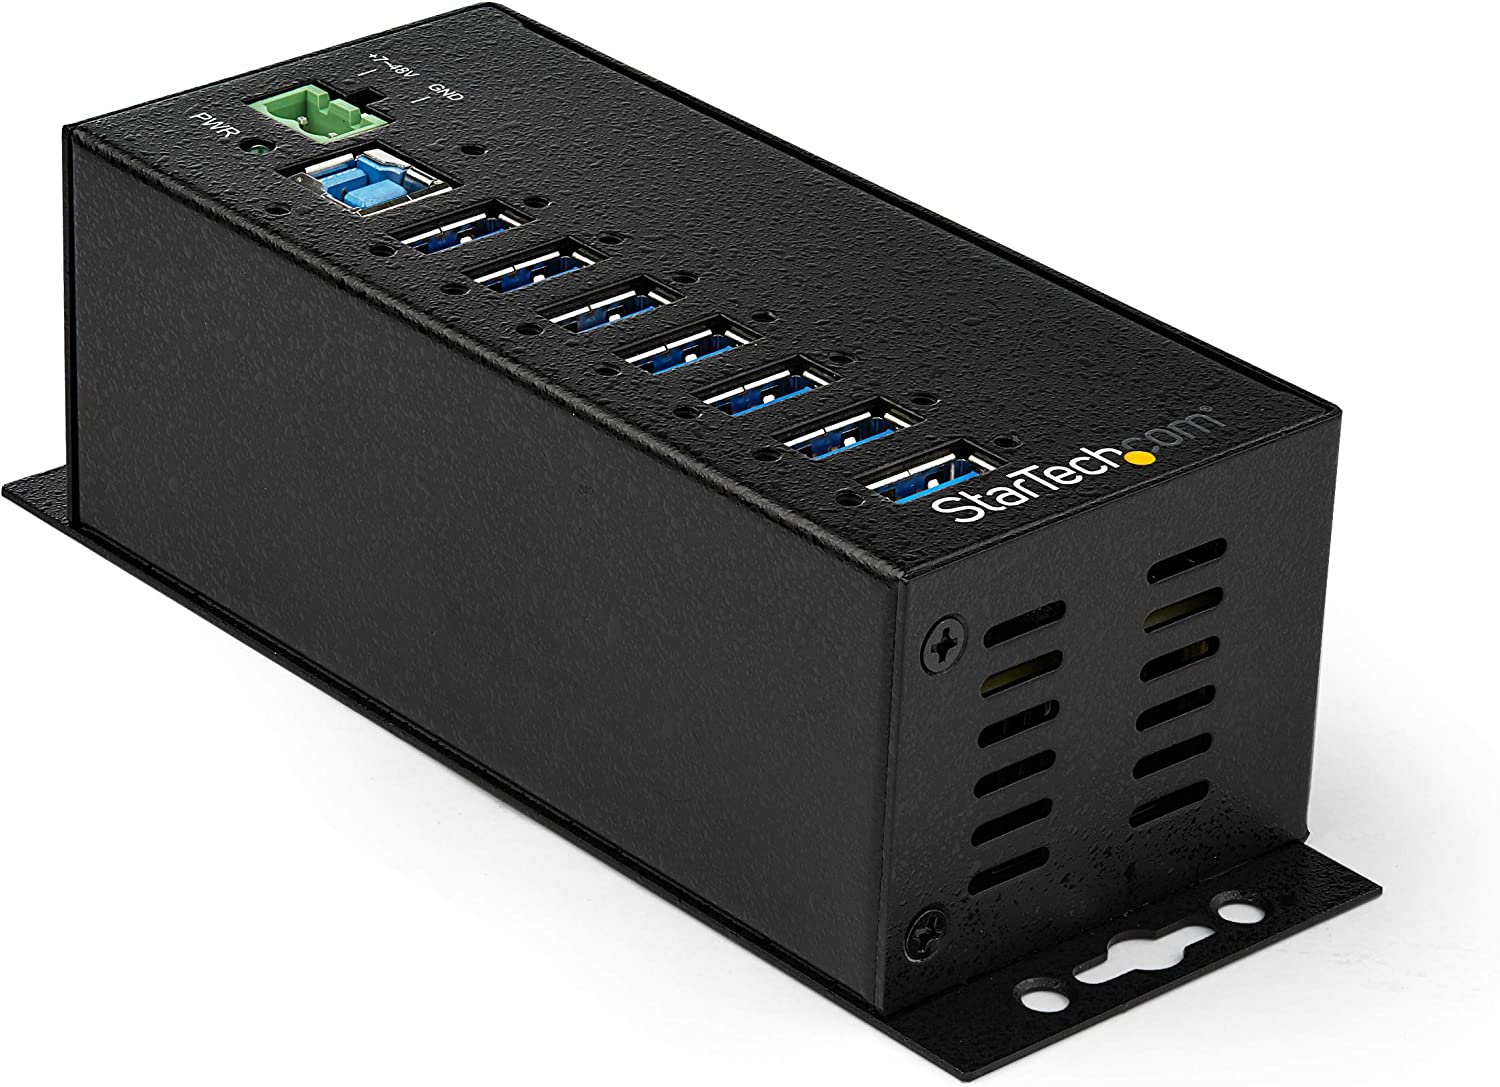 StarTech.com 7 Port USB Hub with Power Adapter - Surge Protection - Metal Industrial USB 3.0 Data Transfer Hub - Din Rail, Wall or Desk Mountable - High Speed USB 3.1 Gen 1 5Gbps Hub (HB30A7AME)